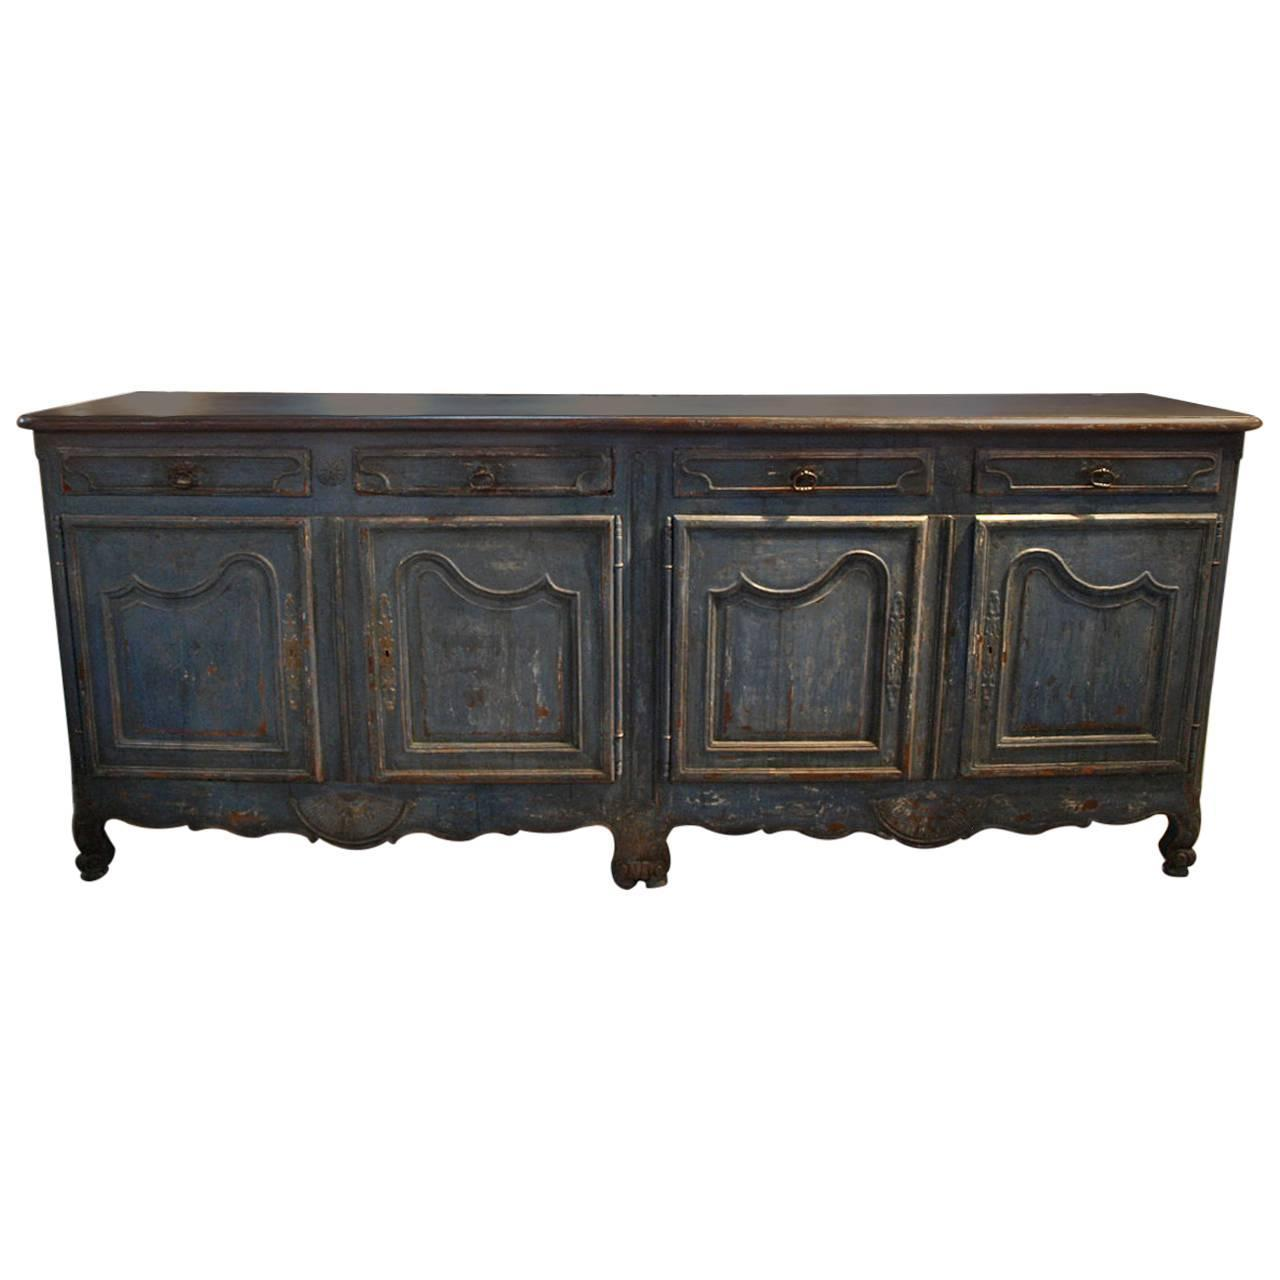 French 18th Century Enfilade Buffet In Painted Wood At 1stdibs. Full resolution‎  photograph, nominally Width 1280 Height 1280 pixels, photograph with #80694B.